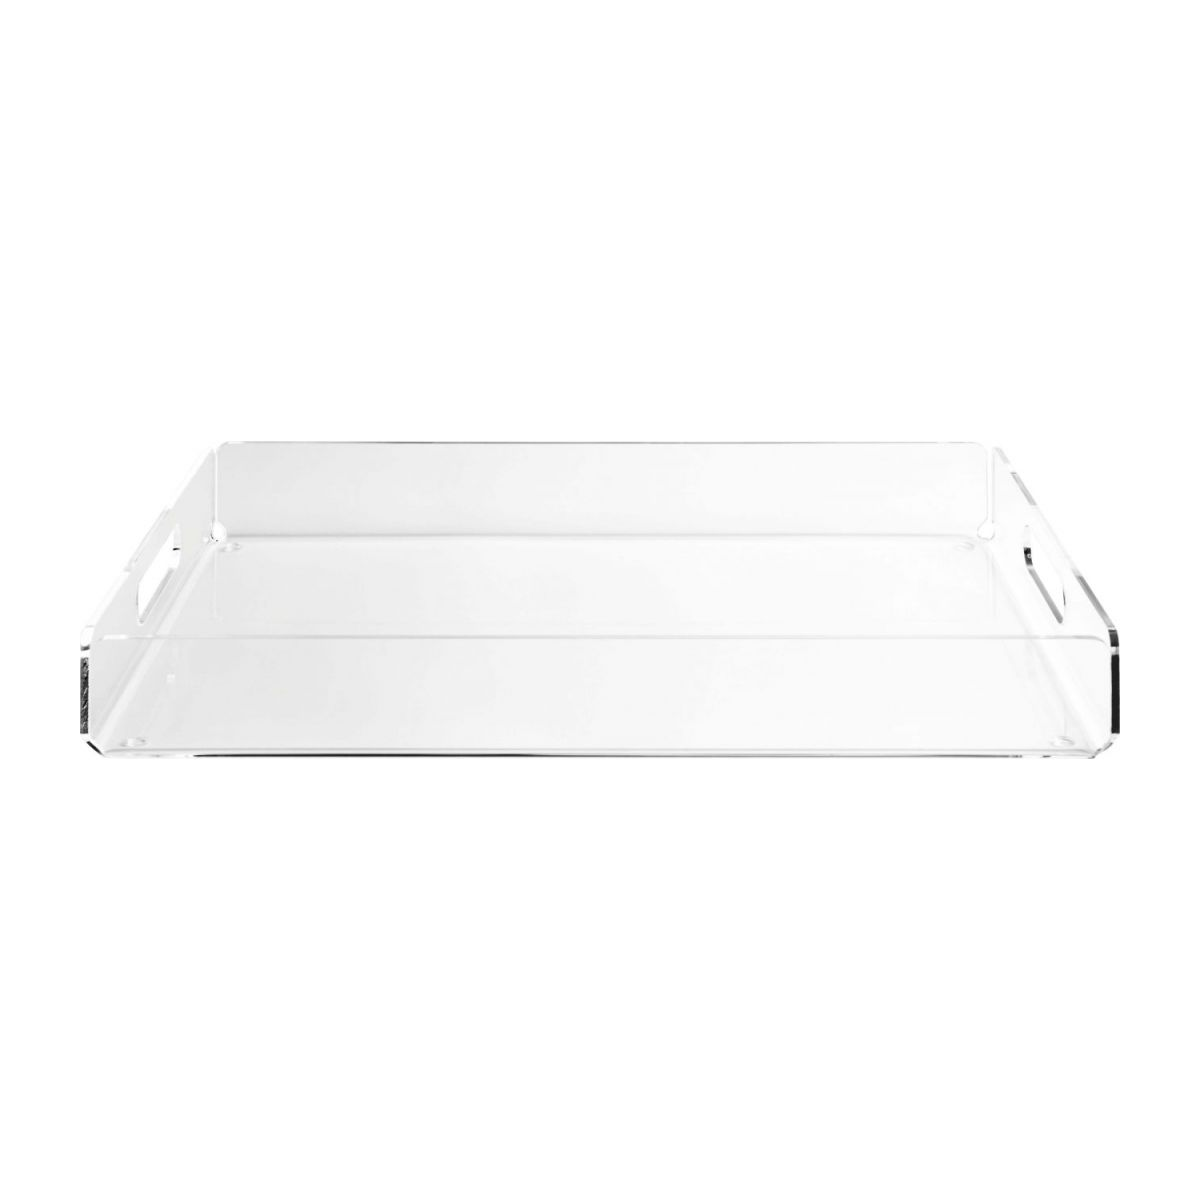 Transparent acrylic tray n°2